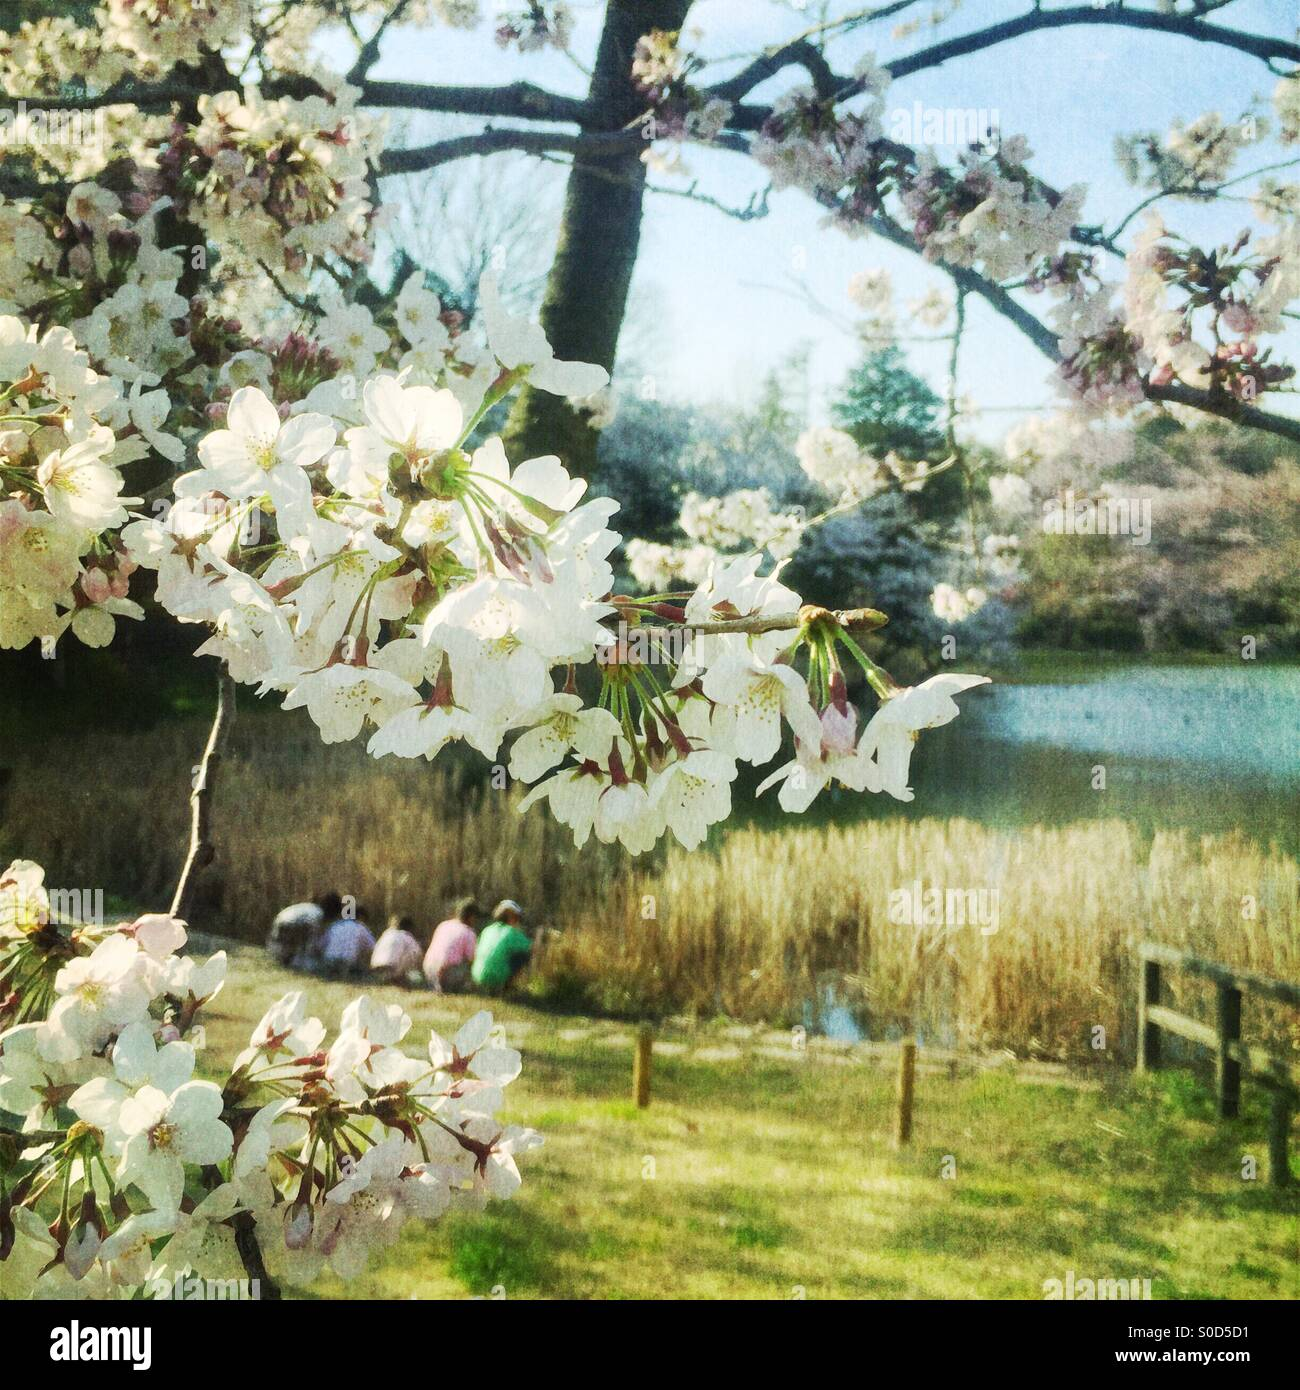 Children play by a pond in Spring with white cherry blossoms in the foreground. Vintage paper texture overlay. - Stock Image